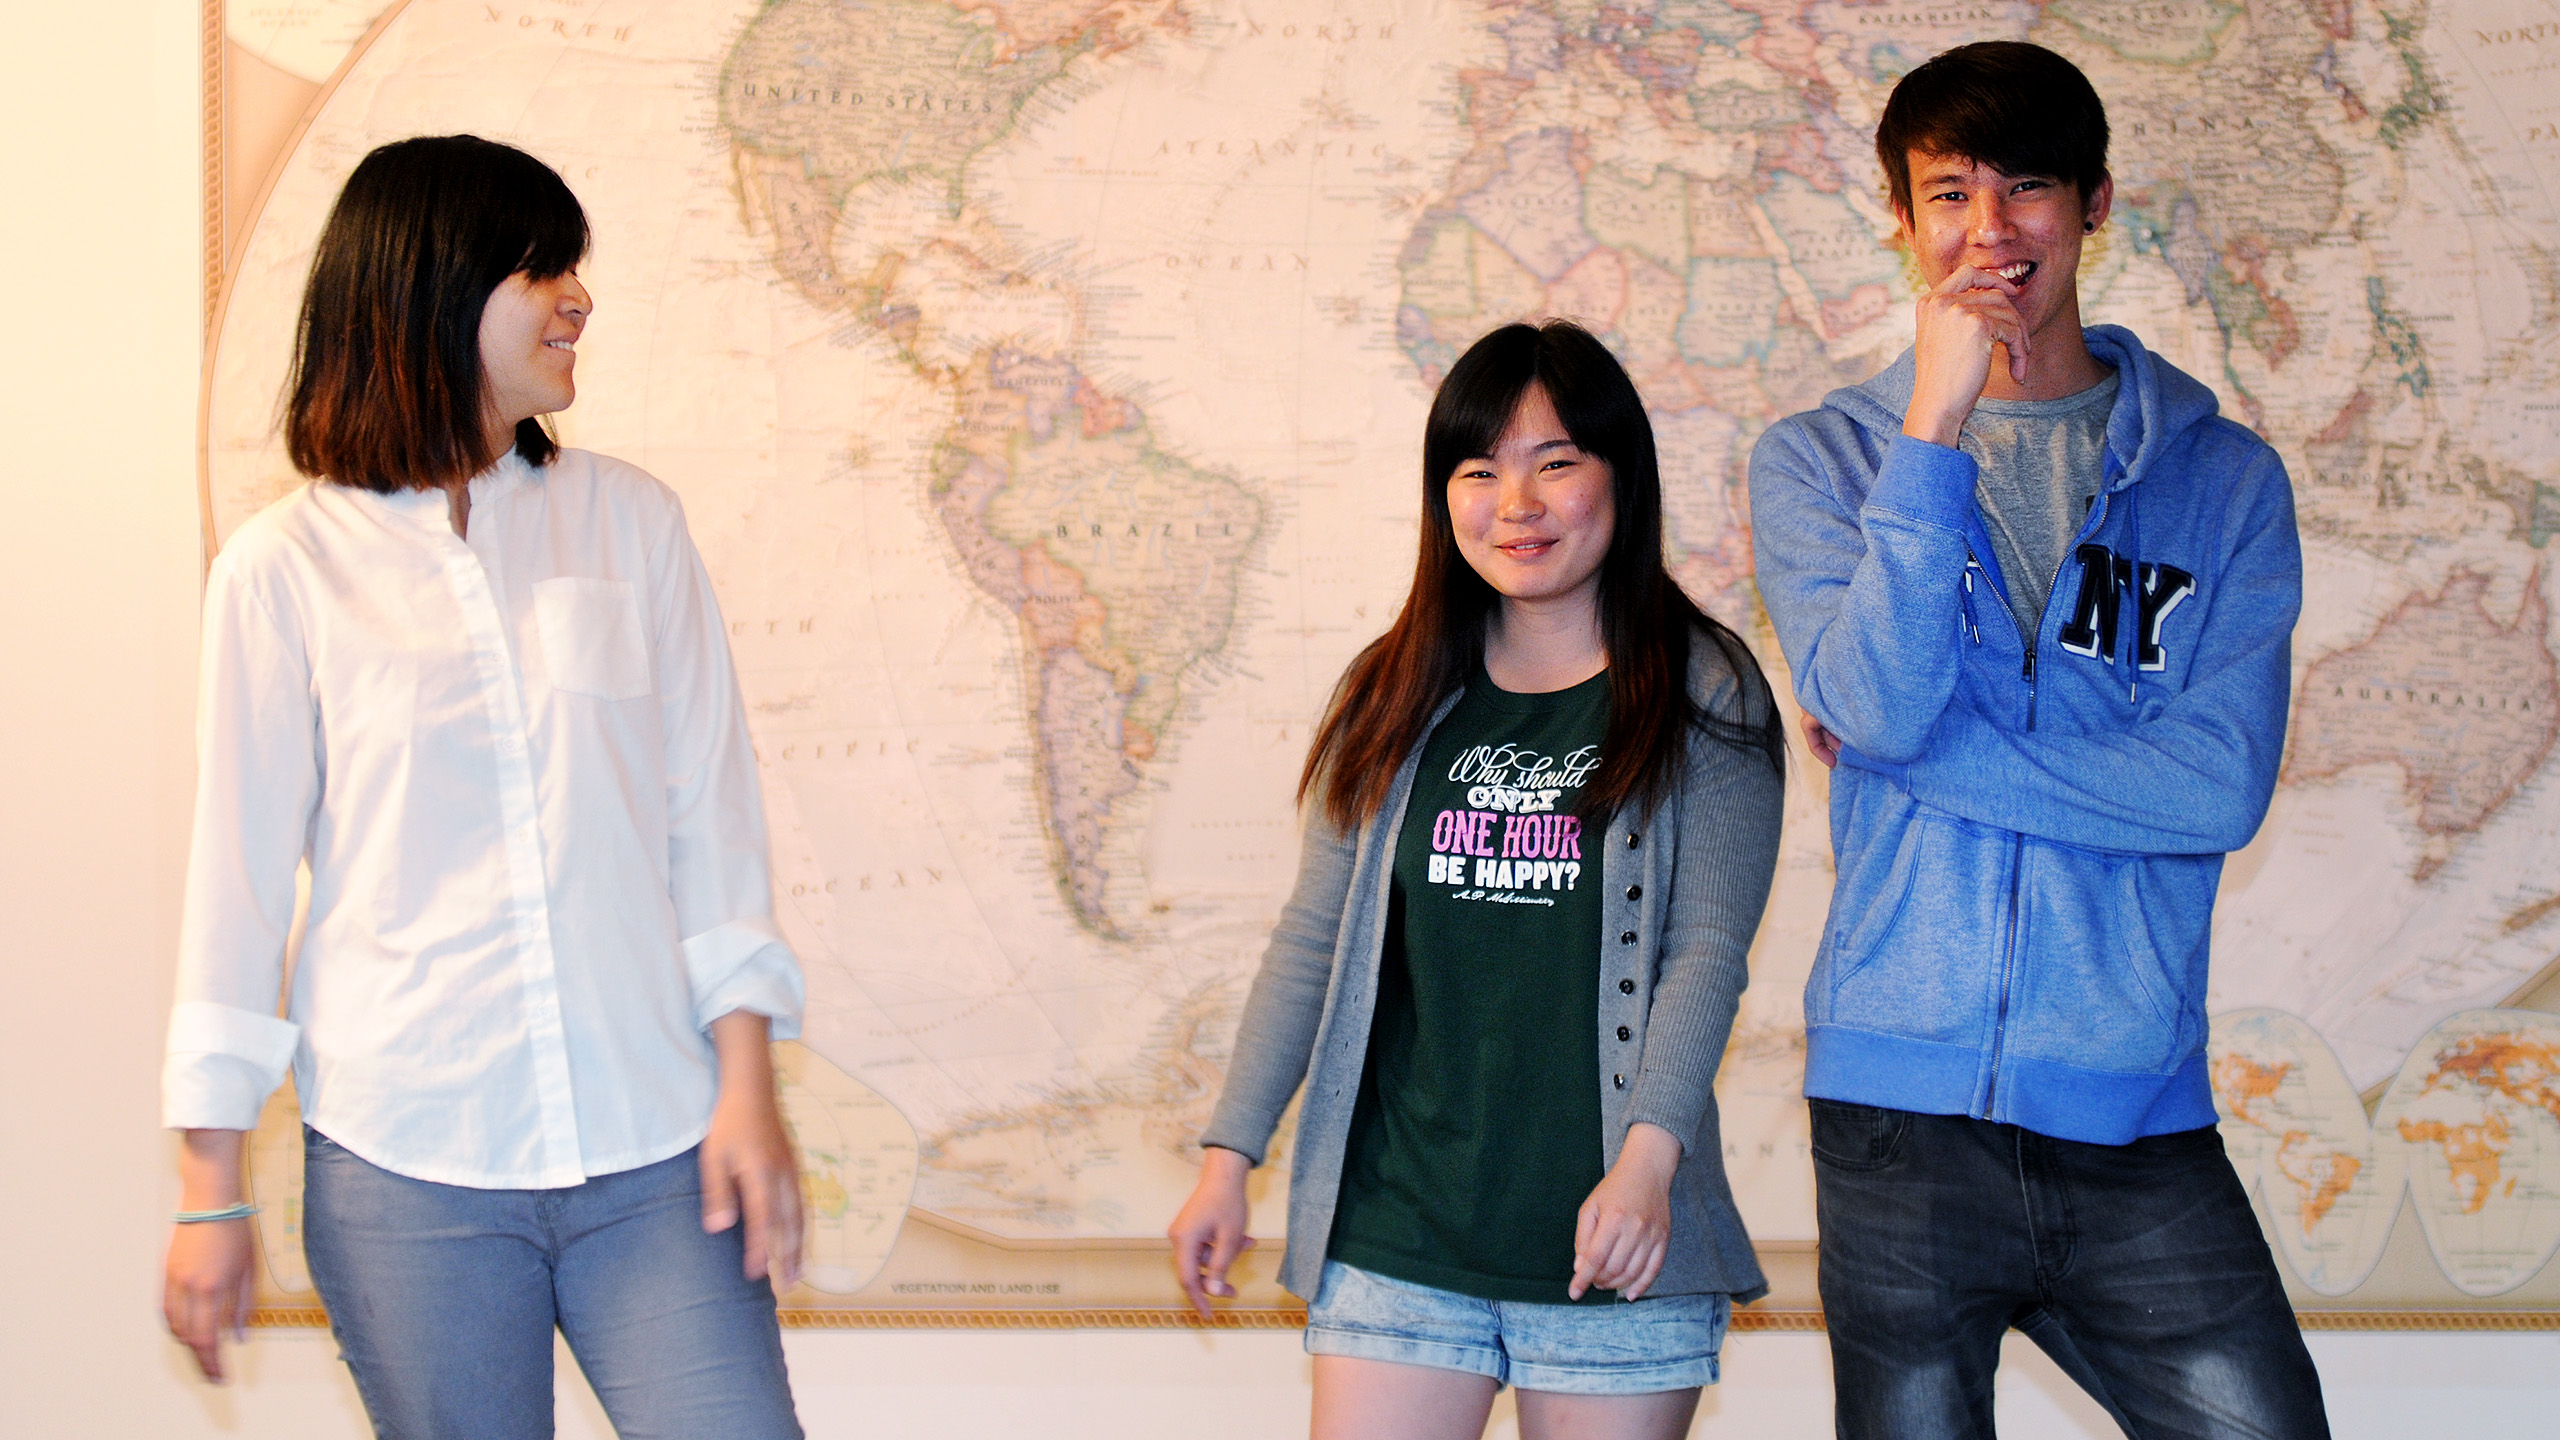 Ada, Joey & Kevin from Mayaysia standing in front of a large world map